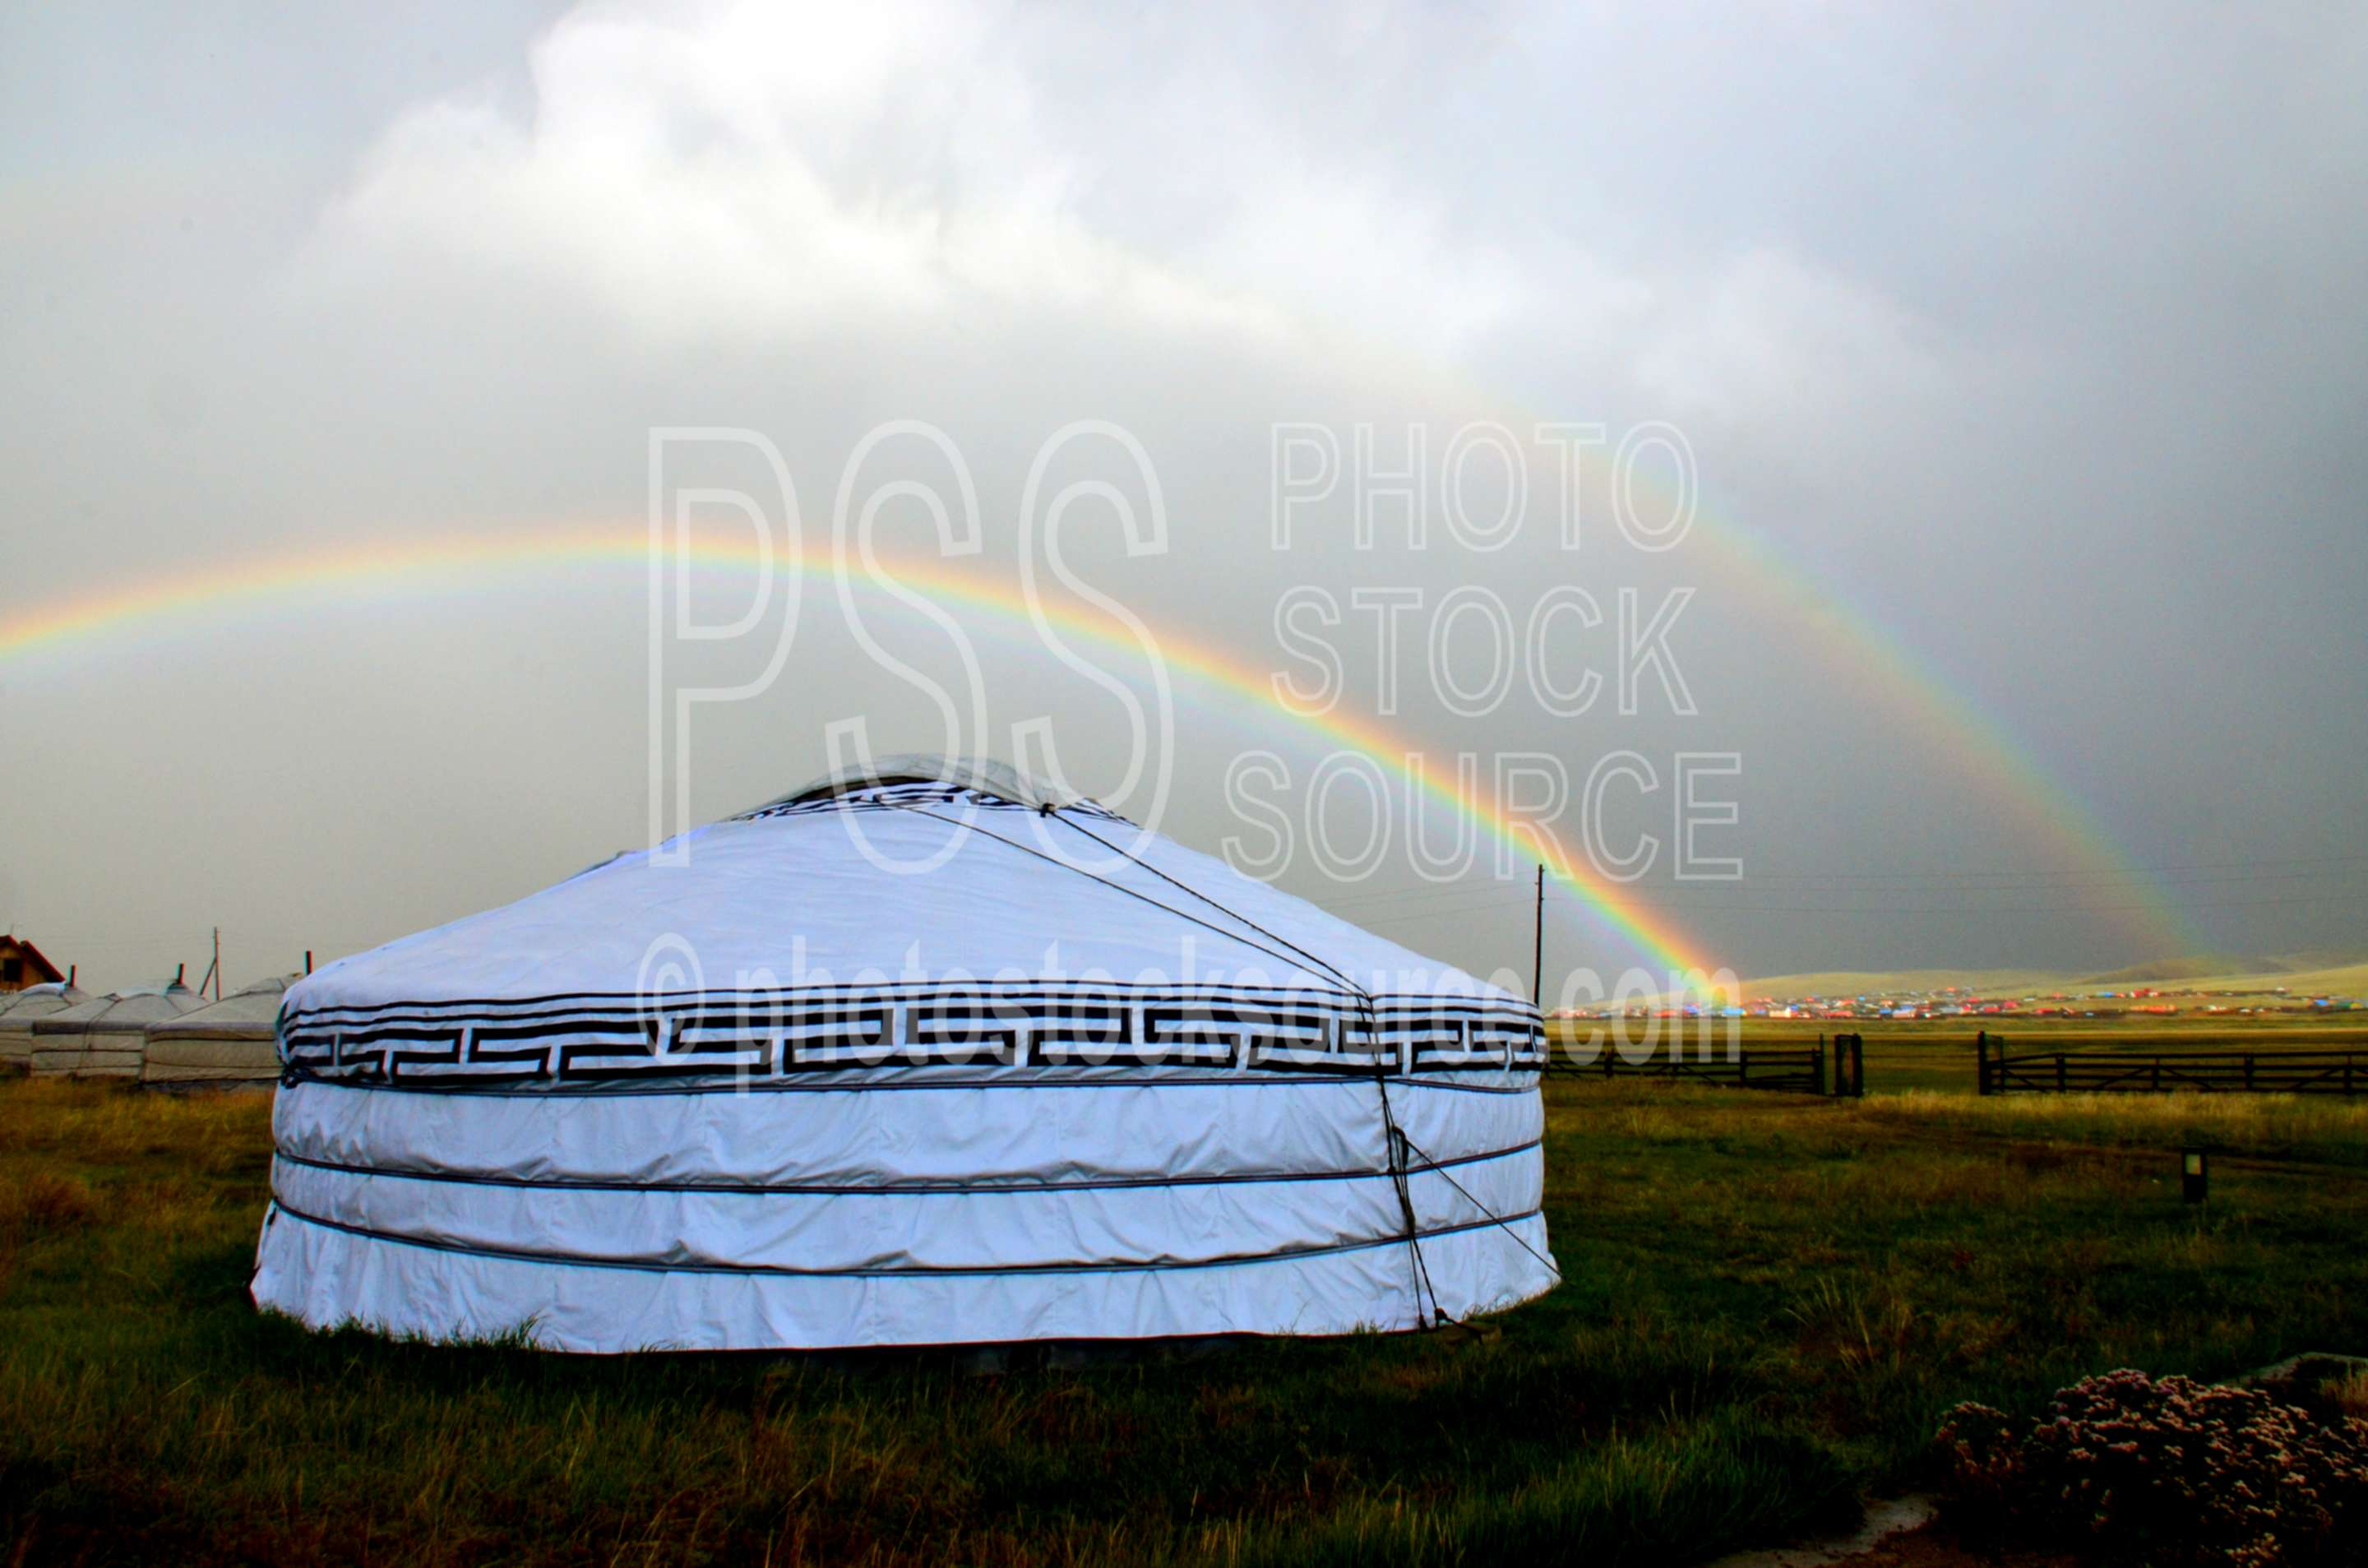 Double Rainbow over Ger,rainbow,ger,yurt,house,clouds,thunderstorm,weather,climate,shelter,dwellings